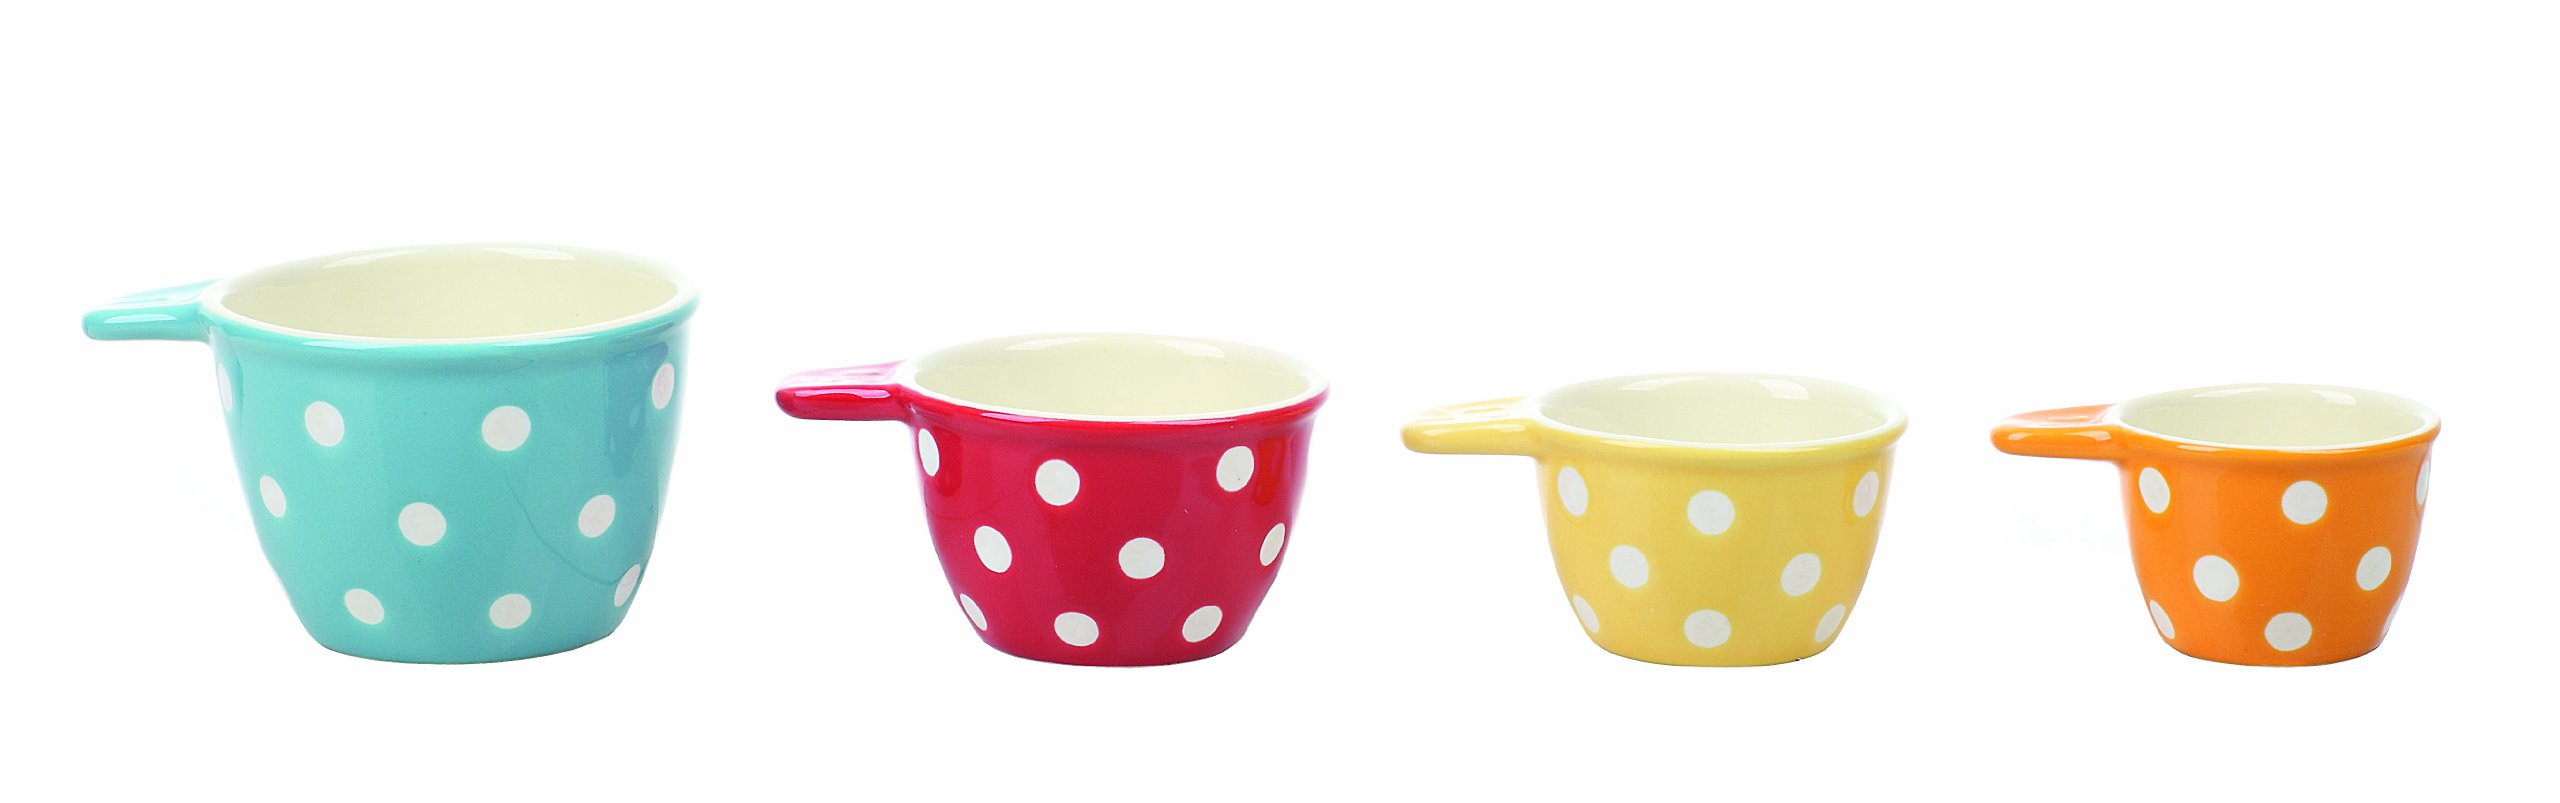 Creative Co-Op Polka Dot Ceramic Measuring Cup, Set Of Four, Multi-colored